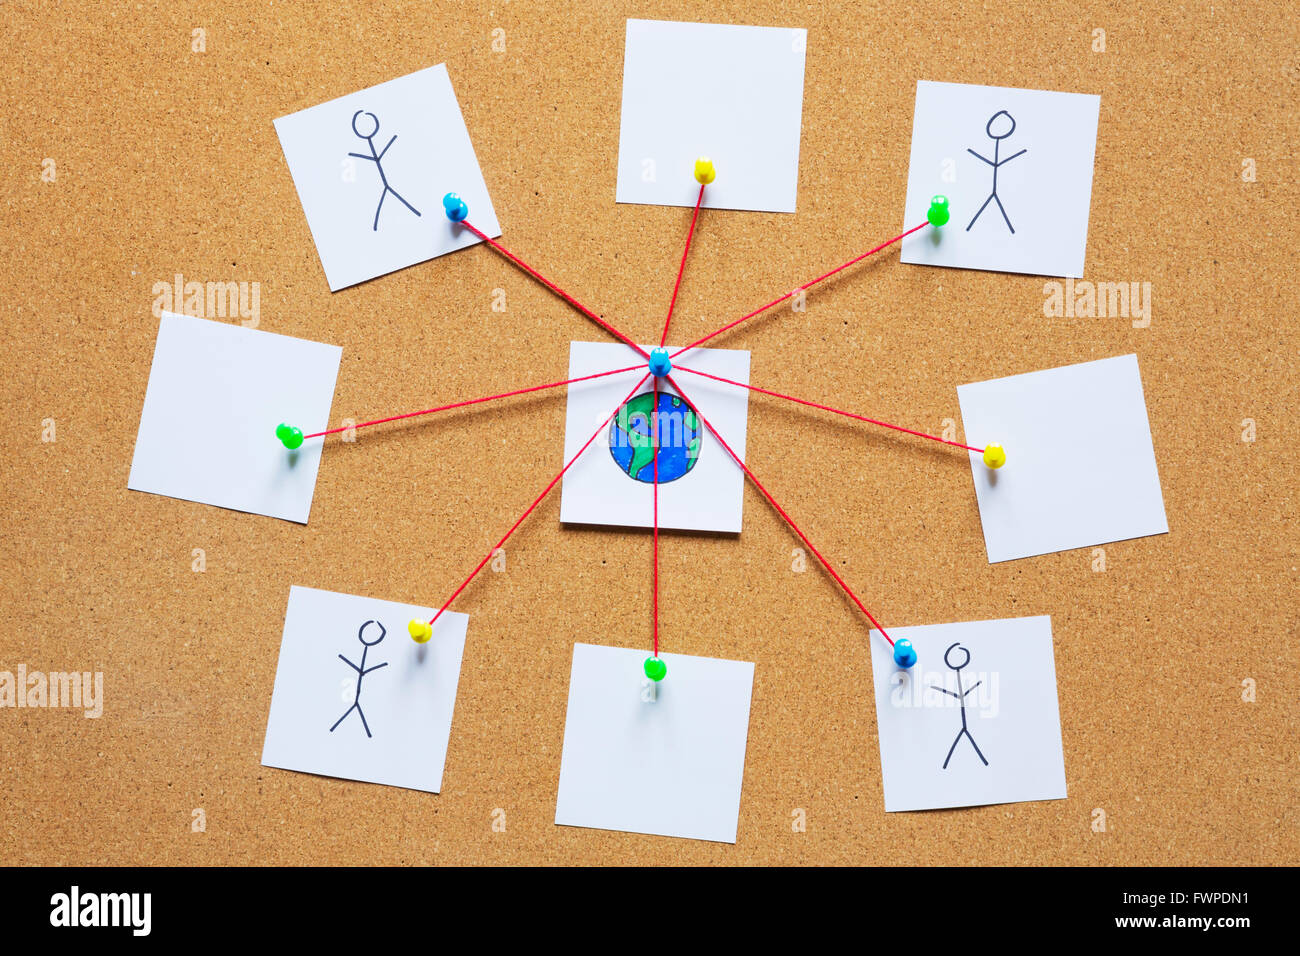 Visualization of a global network on a cork bulletin board. - Stock Image